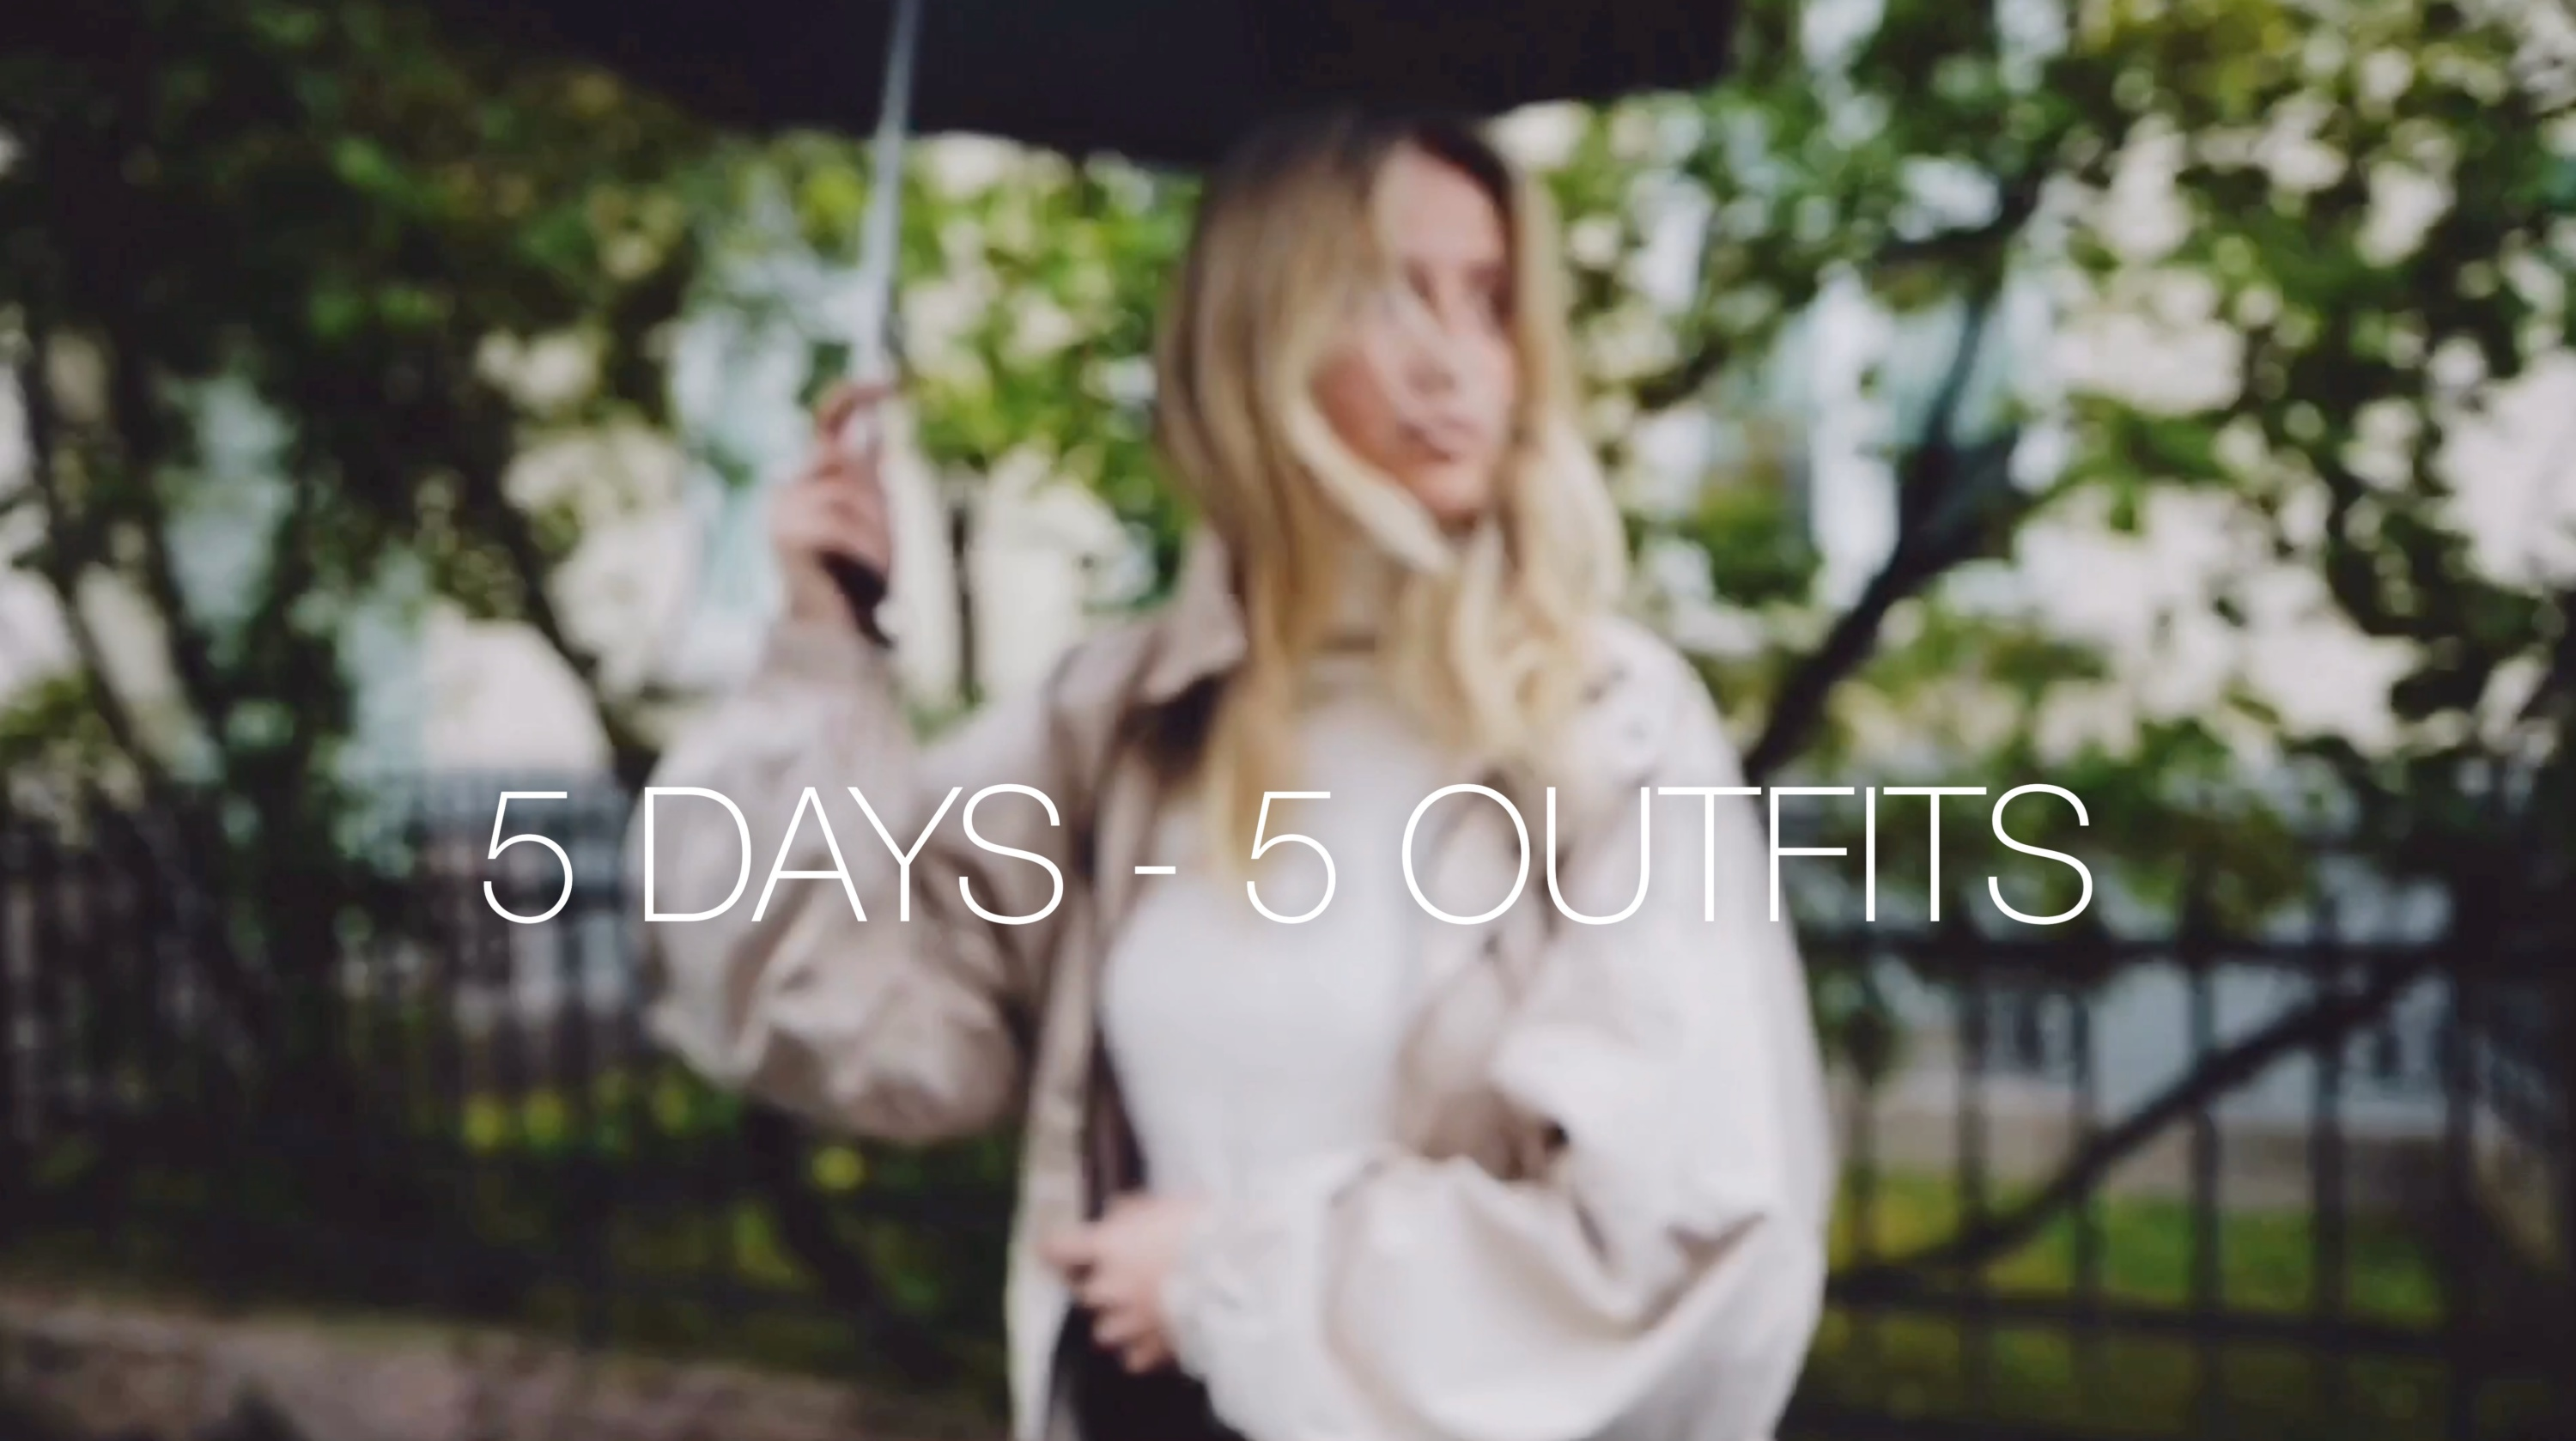 5 DAYS 5 OUTFITS